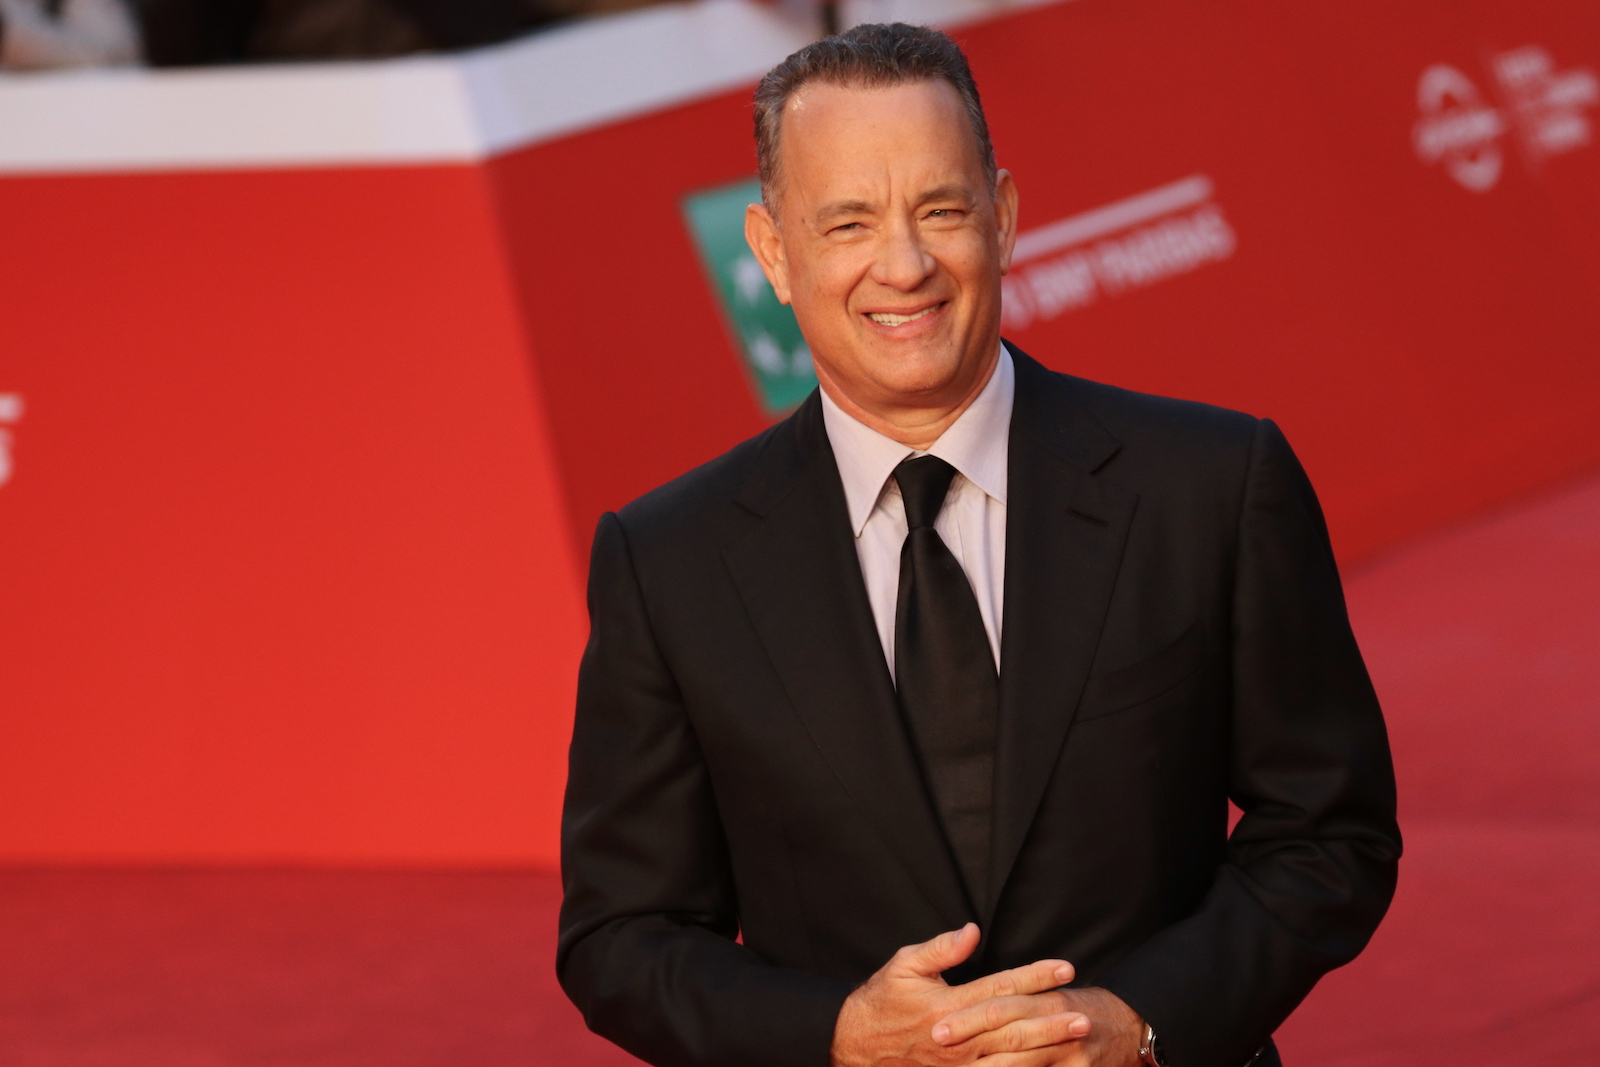 Roma 2016: Tom Hanks sorridente sul red carpet